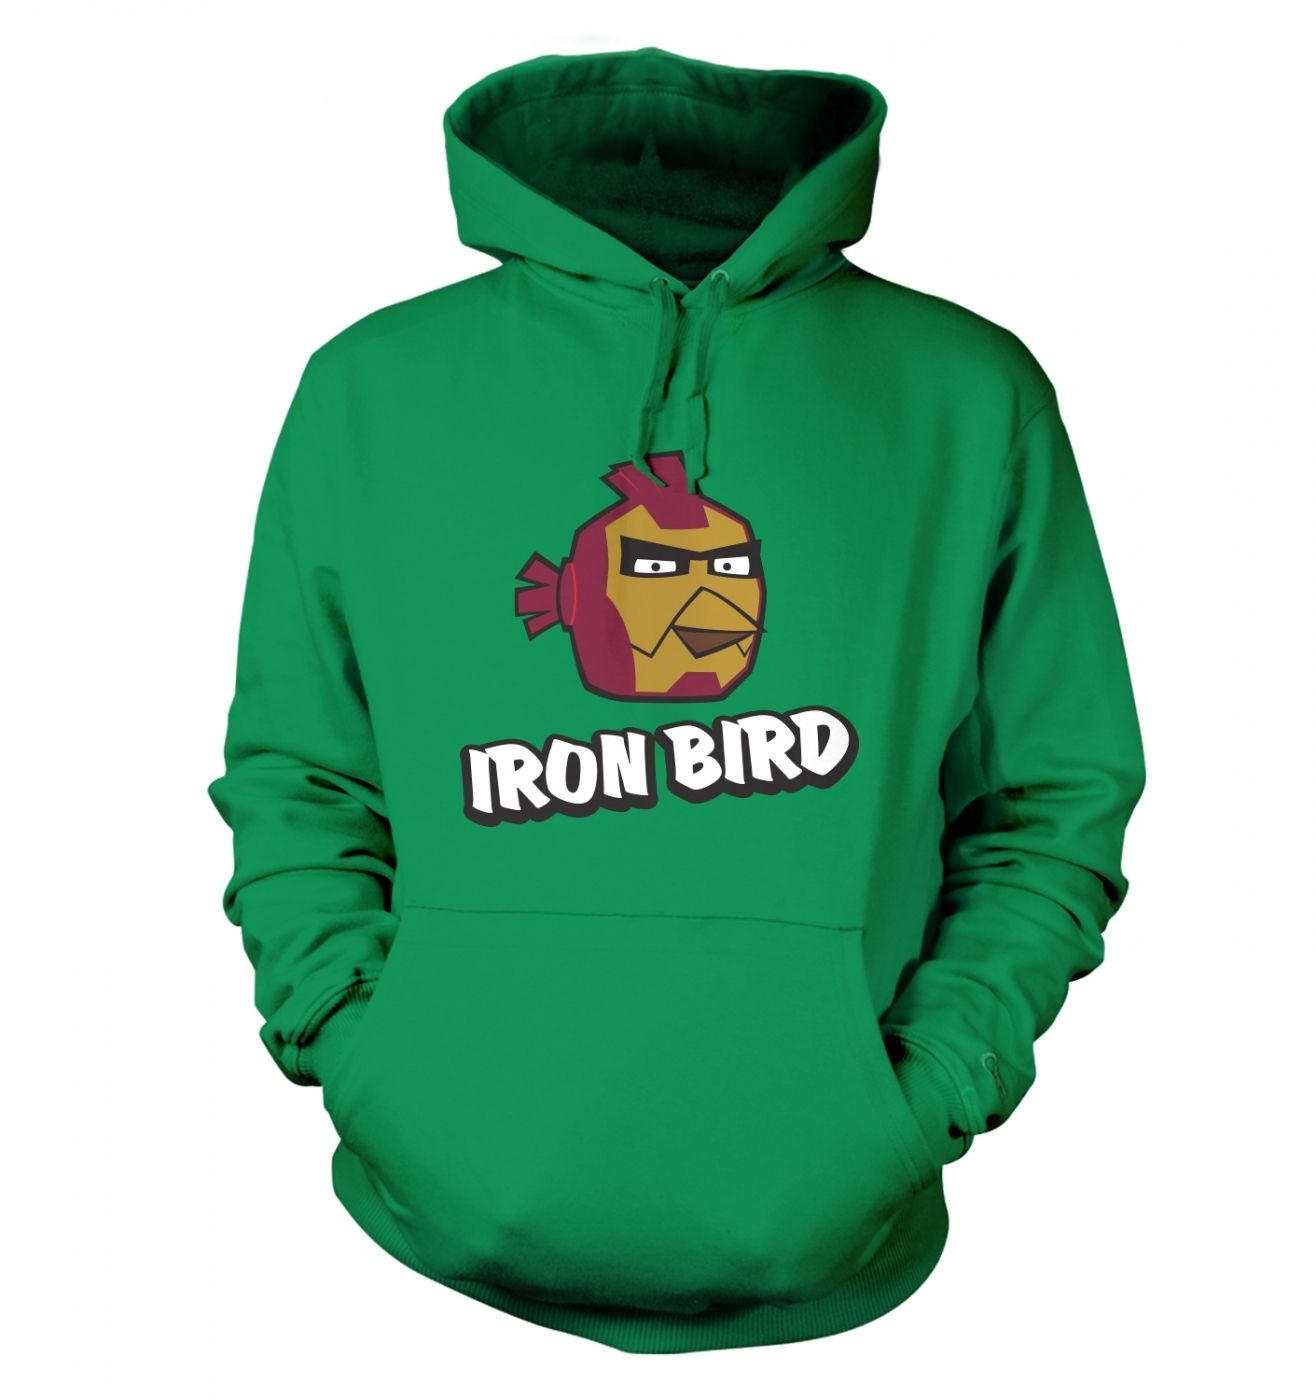 Iron Bird Adult Hoodie Inspired By Avengers, Angry Birds And Iron Man